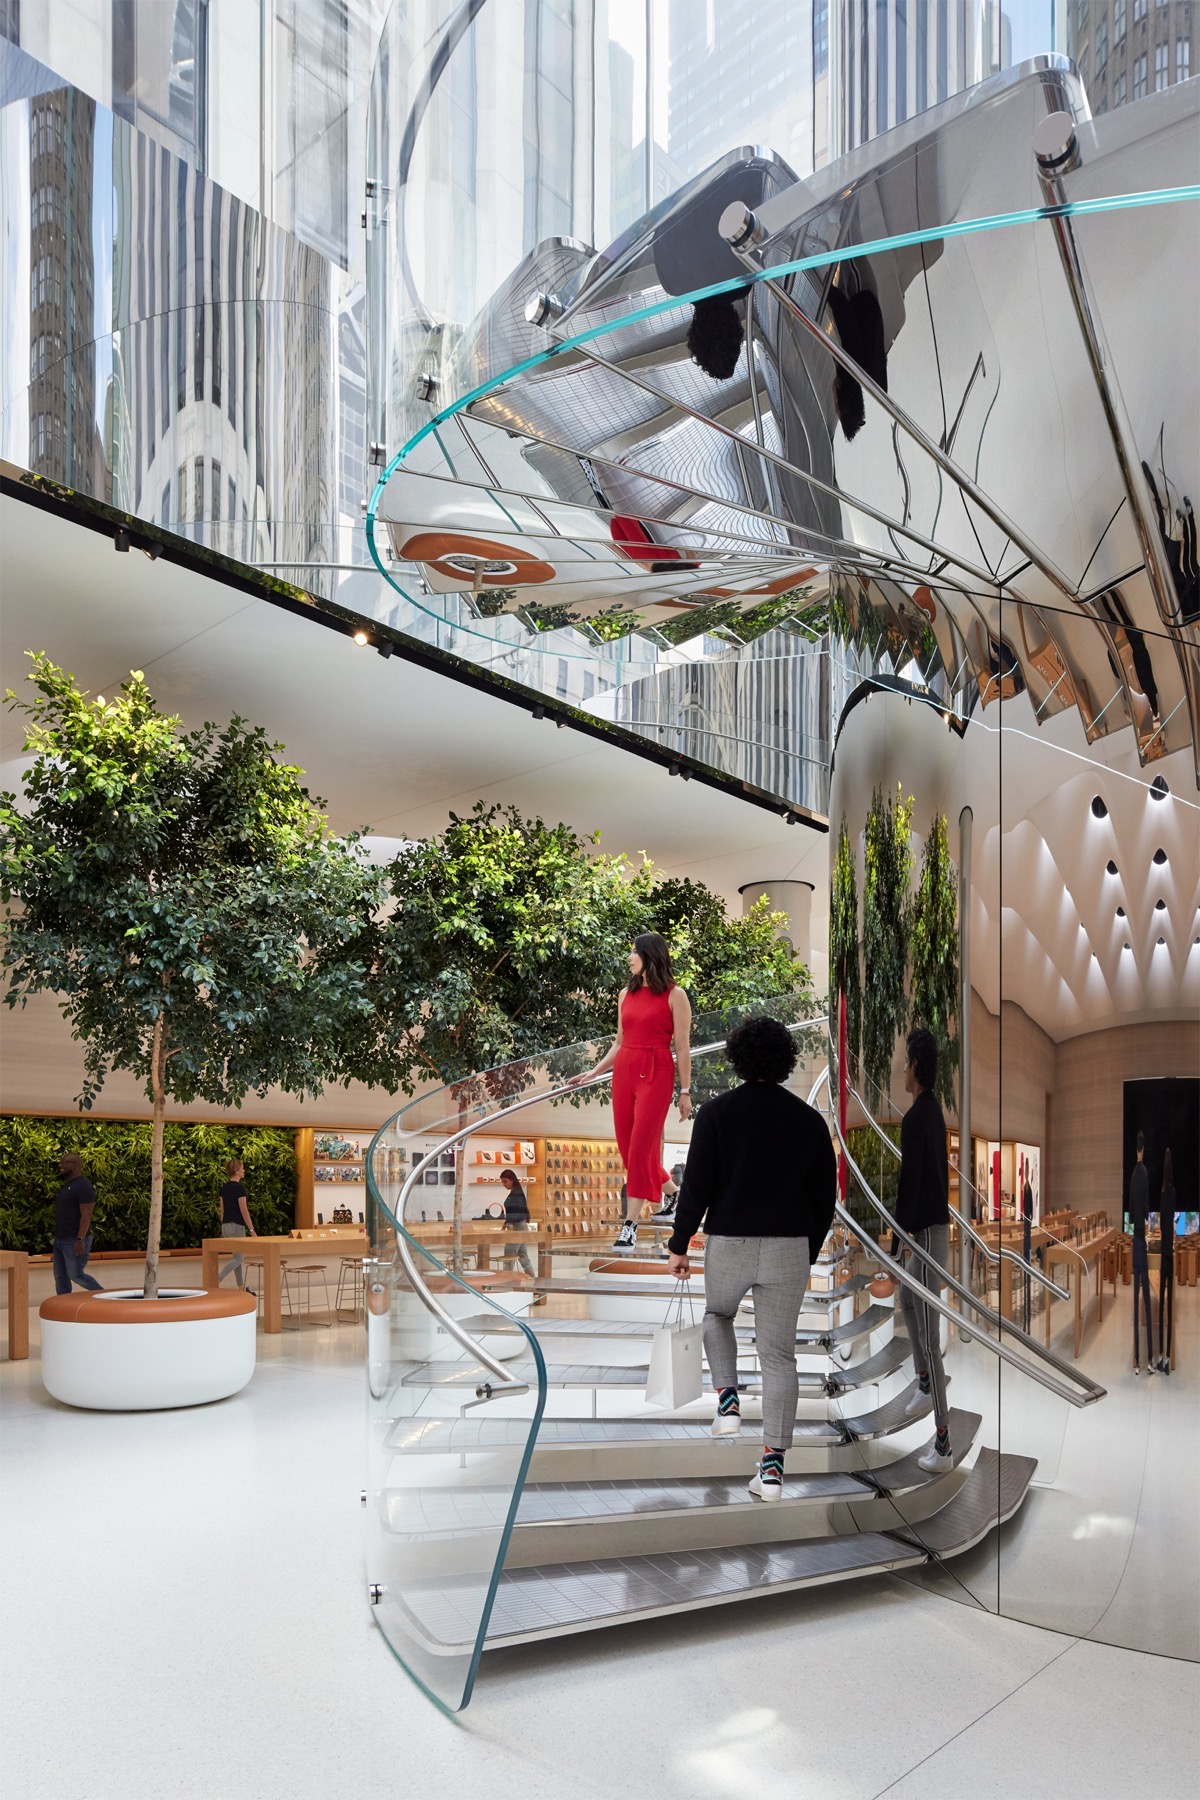 Apple Store fifth avenue new york redesign staircase 091919